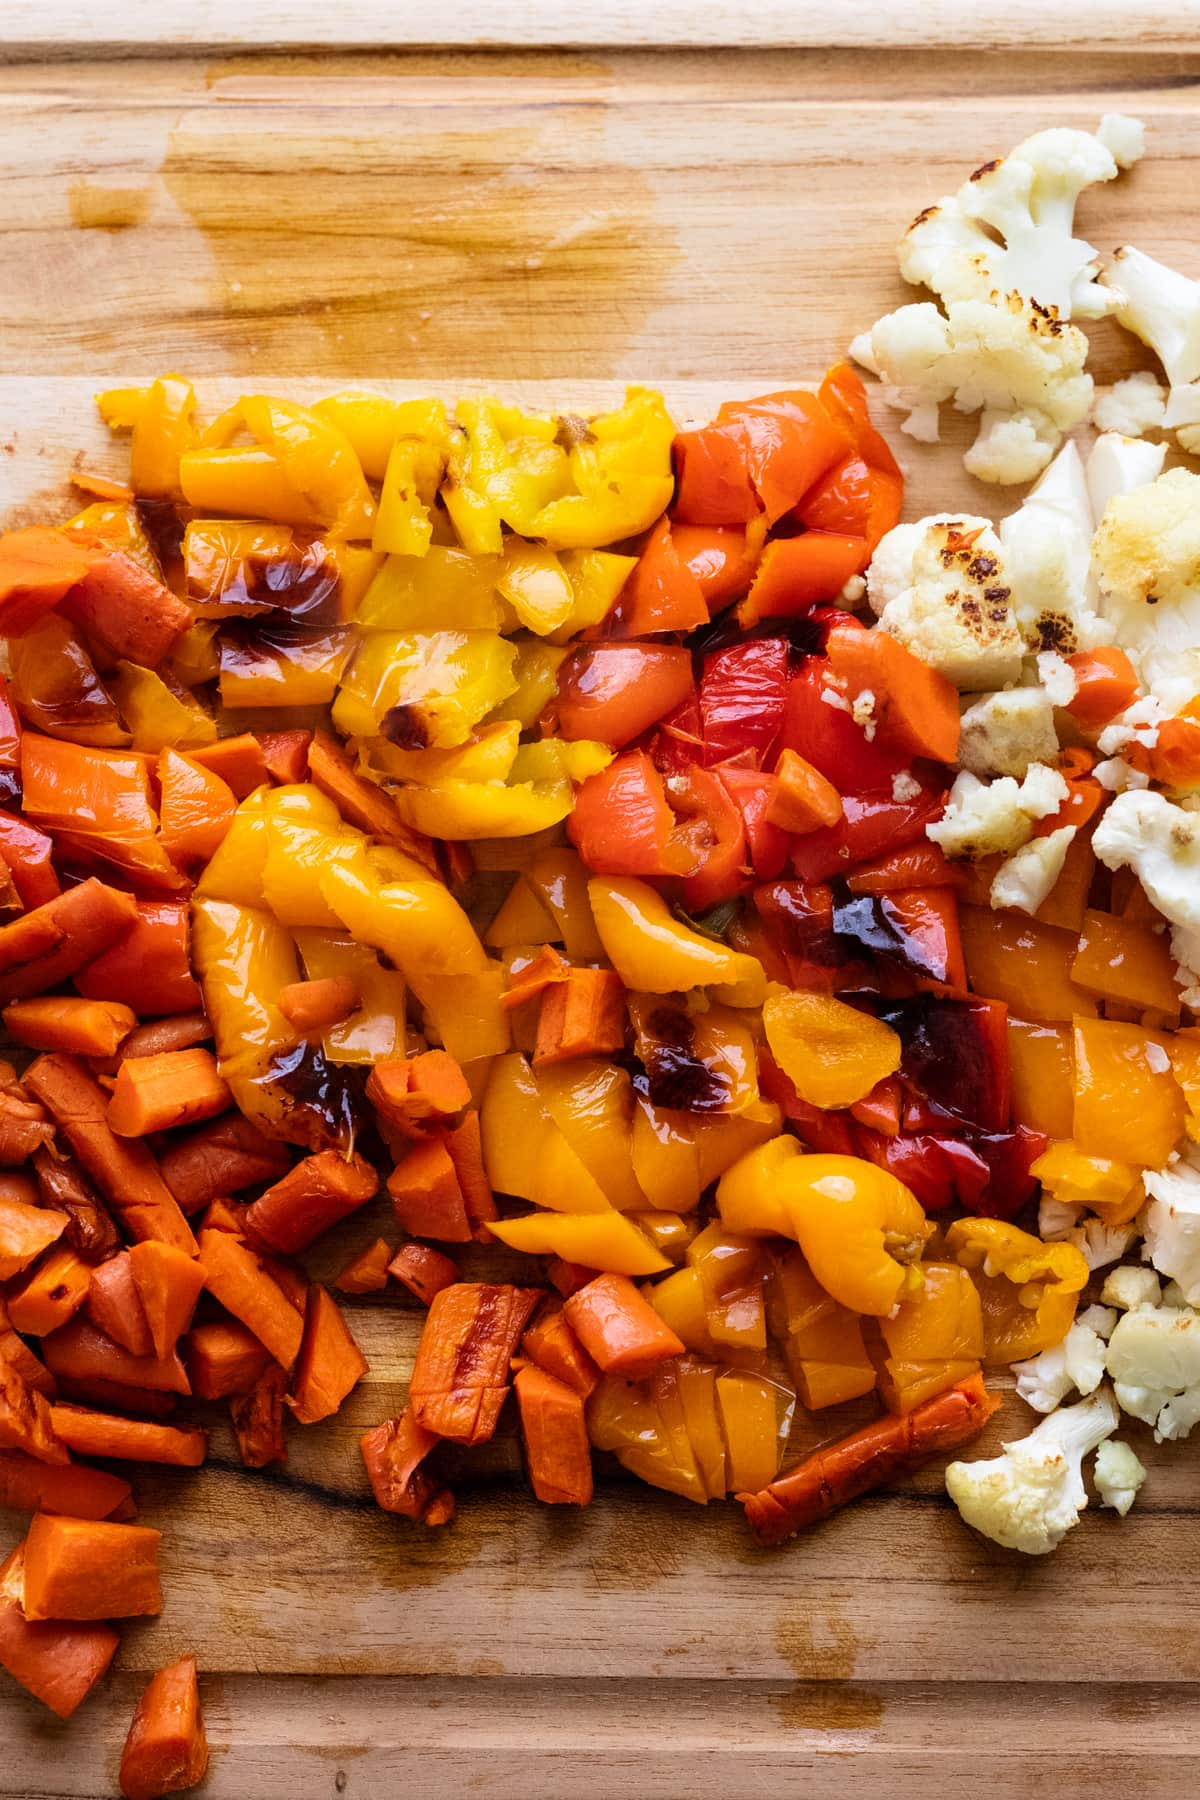 Chopped roasted vegetables on a wooden cutting board.